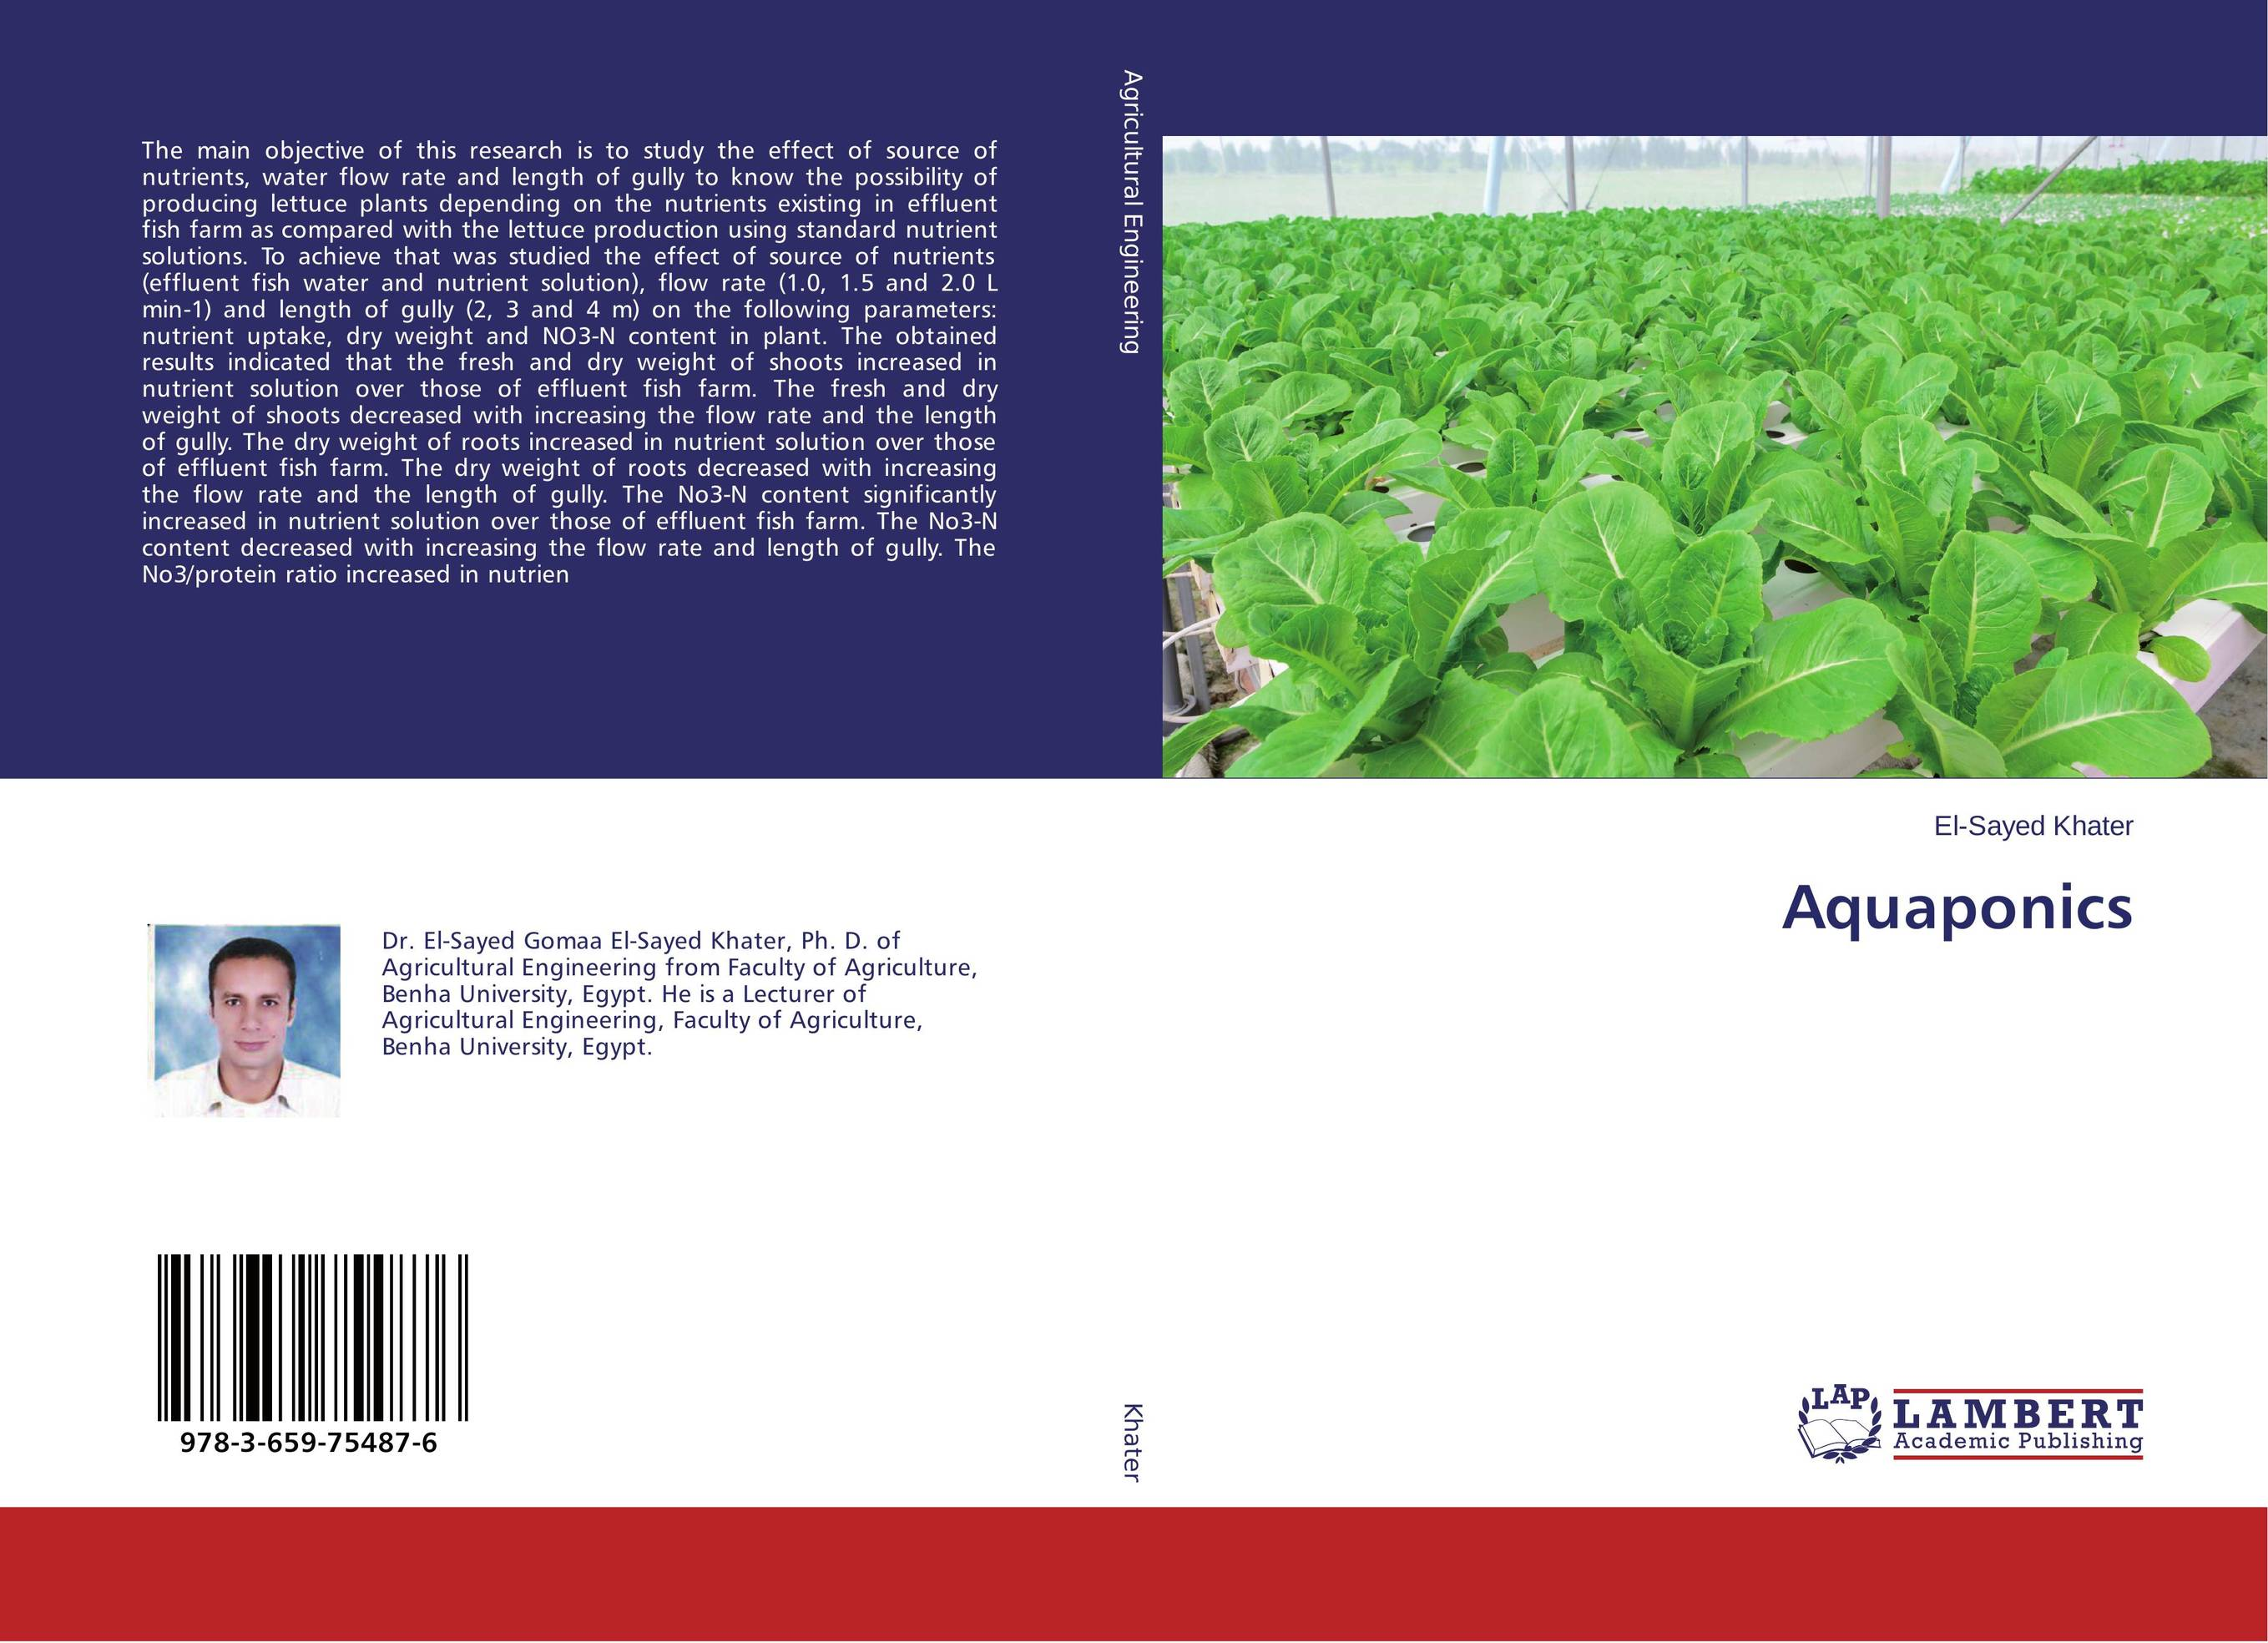 Aquaponics influence of varying fish densities on pond nutrient dynamics